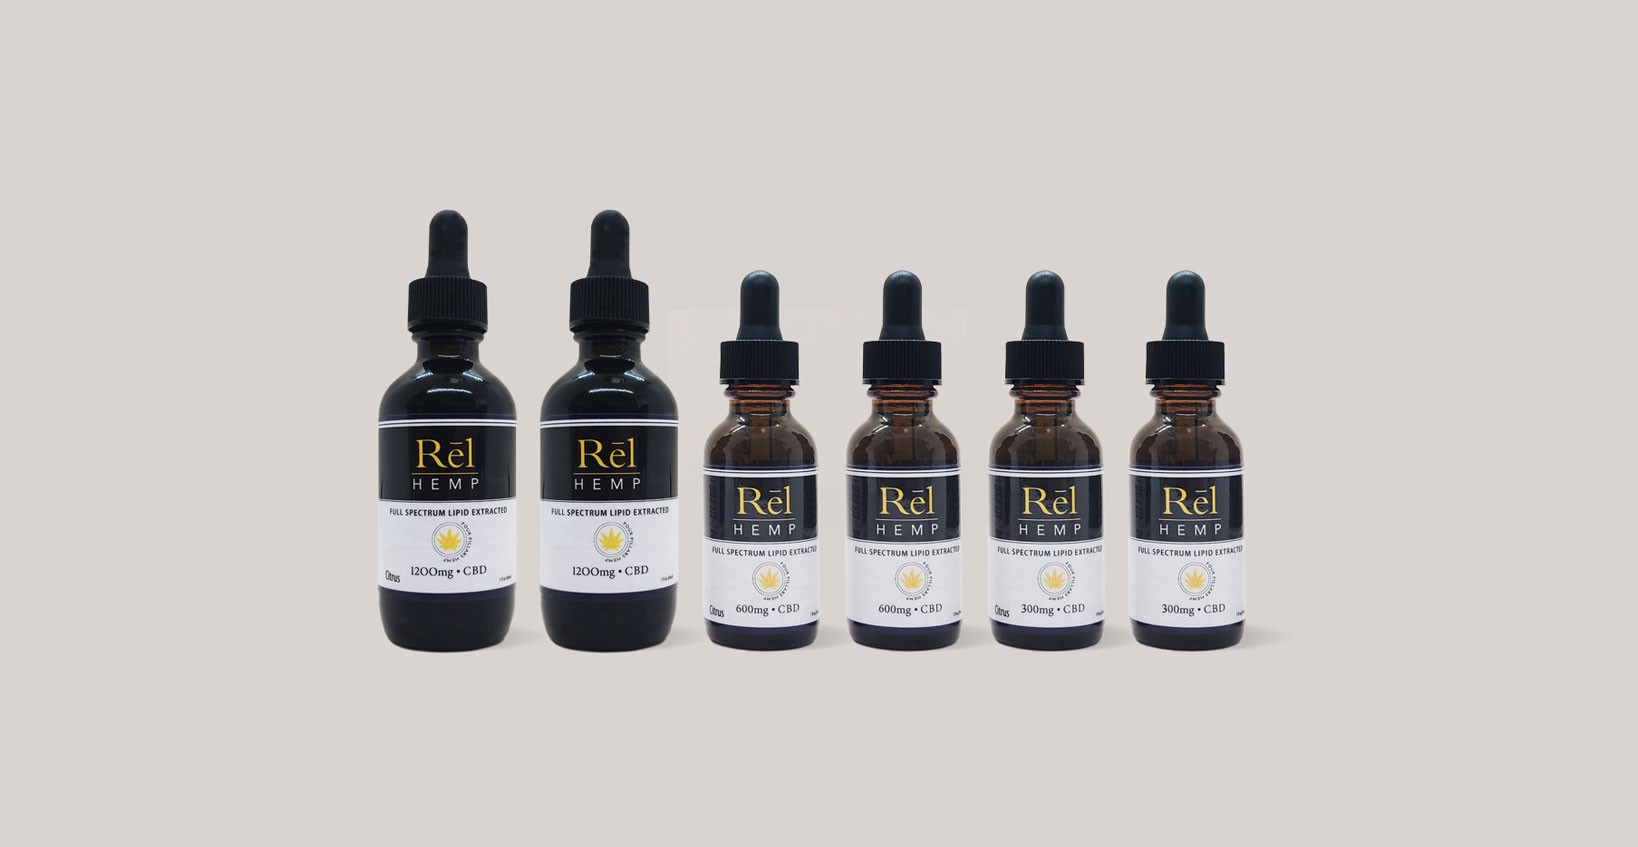 Shop for Rel Hemp Artisinal CBD Products